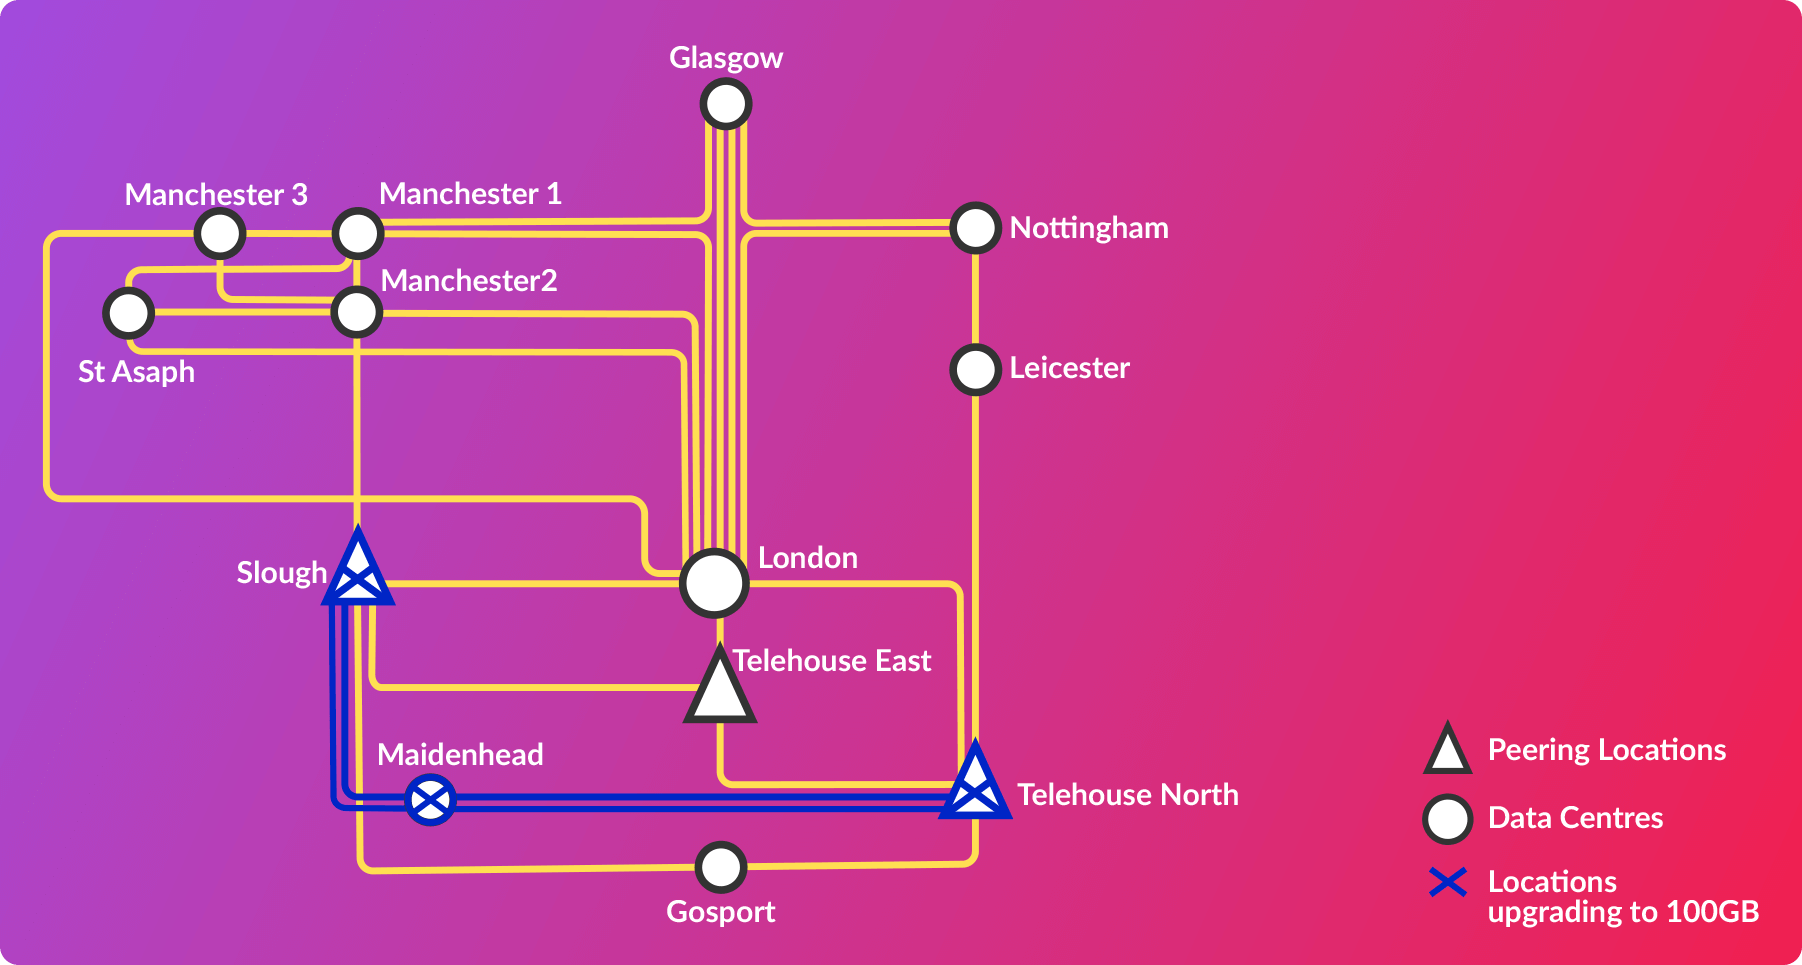 Graphic illustrating data centre network in the style of the London underground